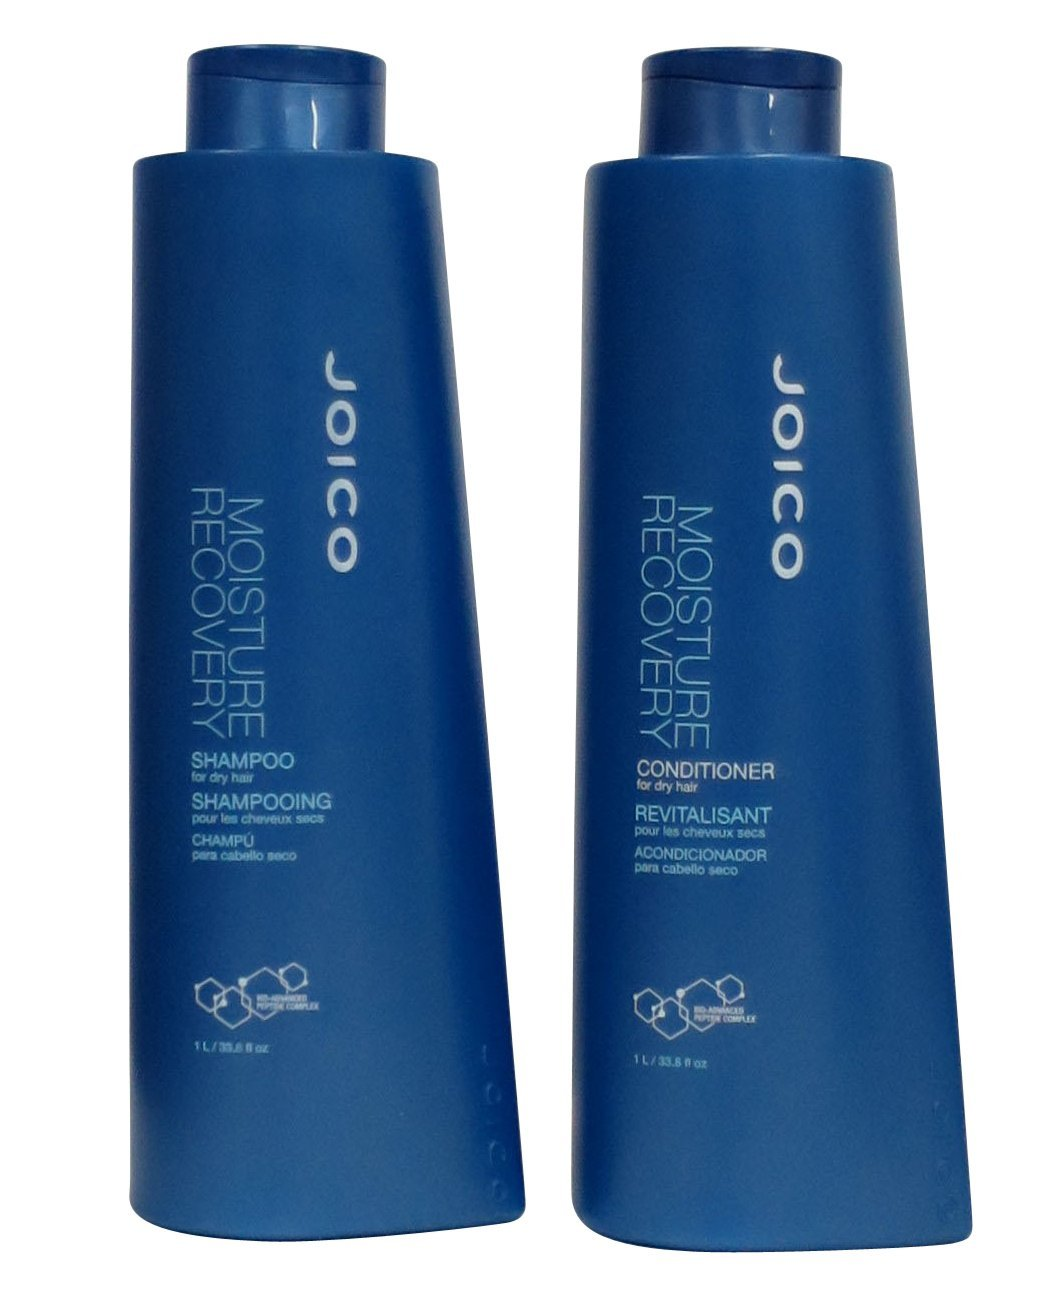 Joico - Moisture Recovery Shampoo and Conditioner Liter Duo Set(33.8oz) by Joico (Image #1)